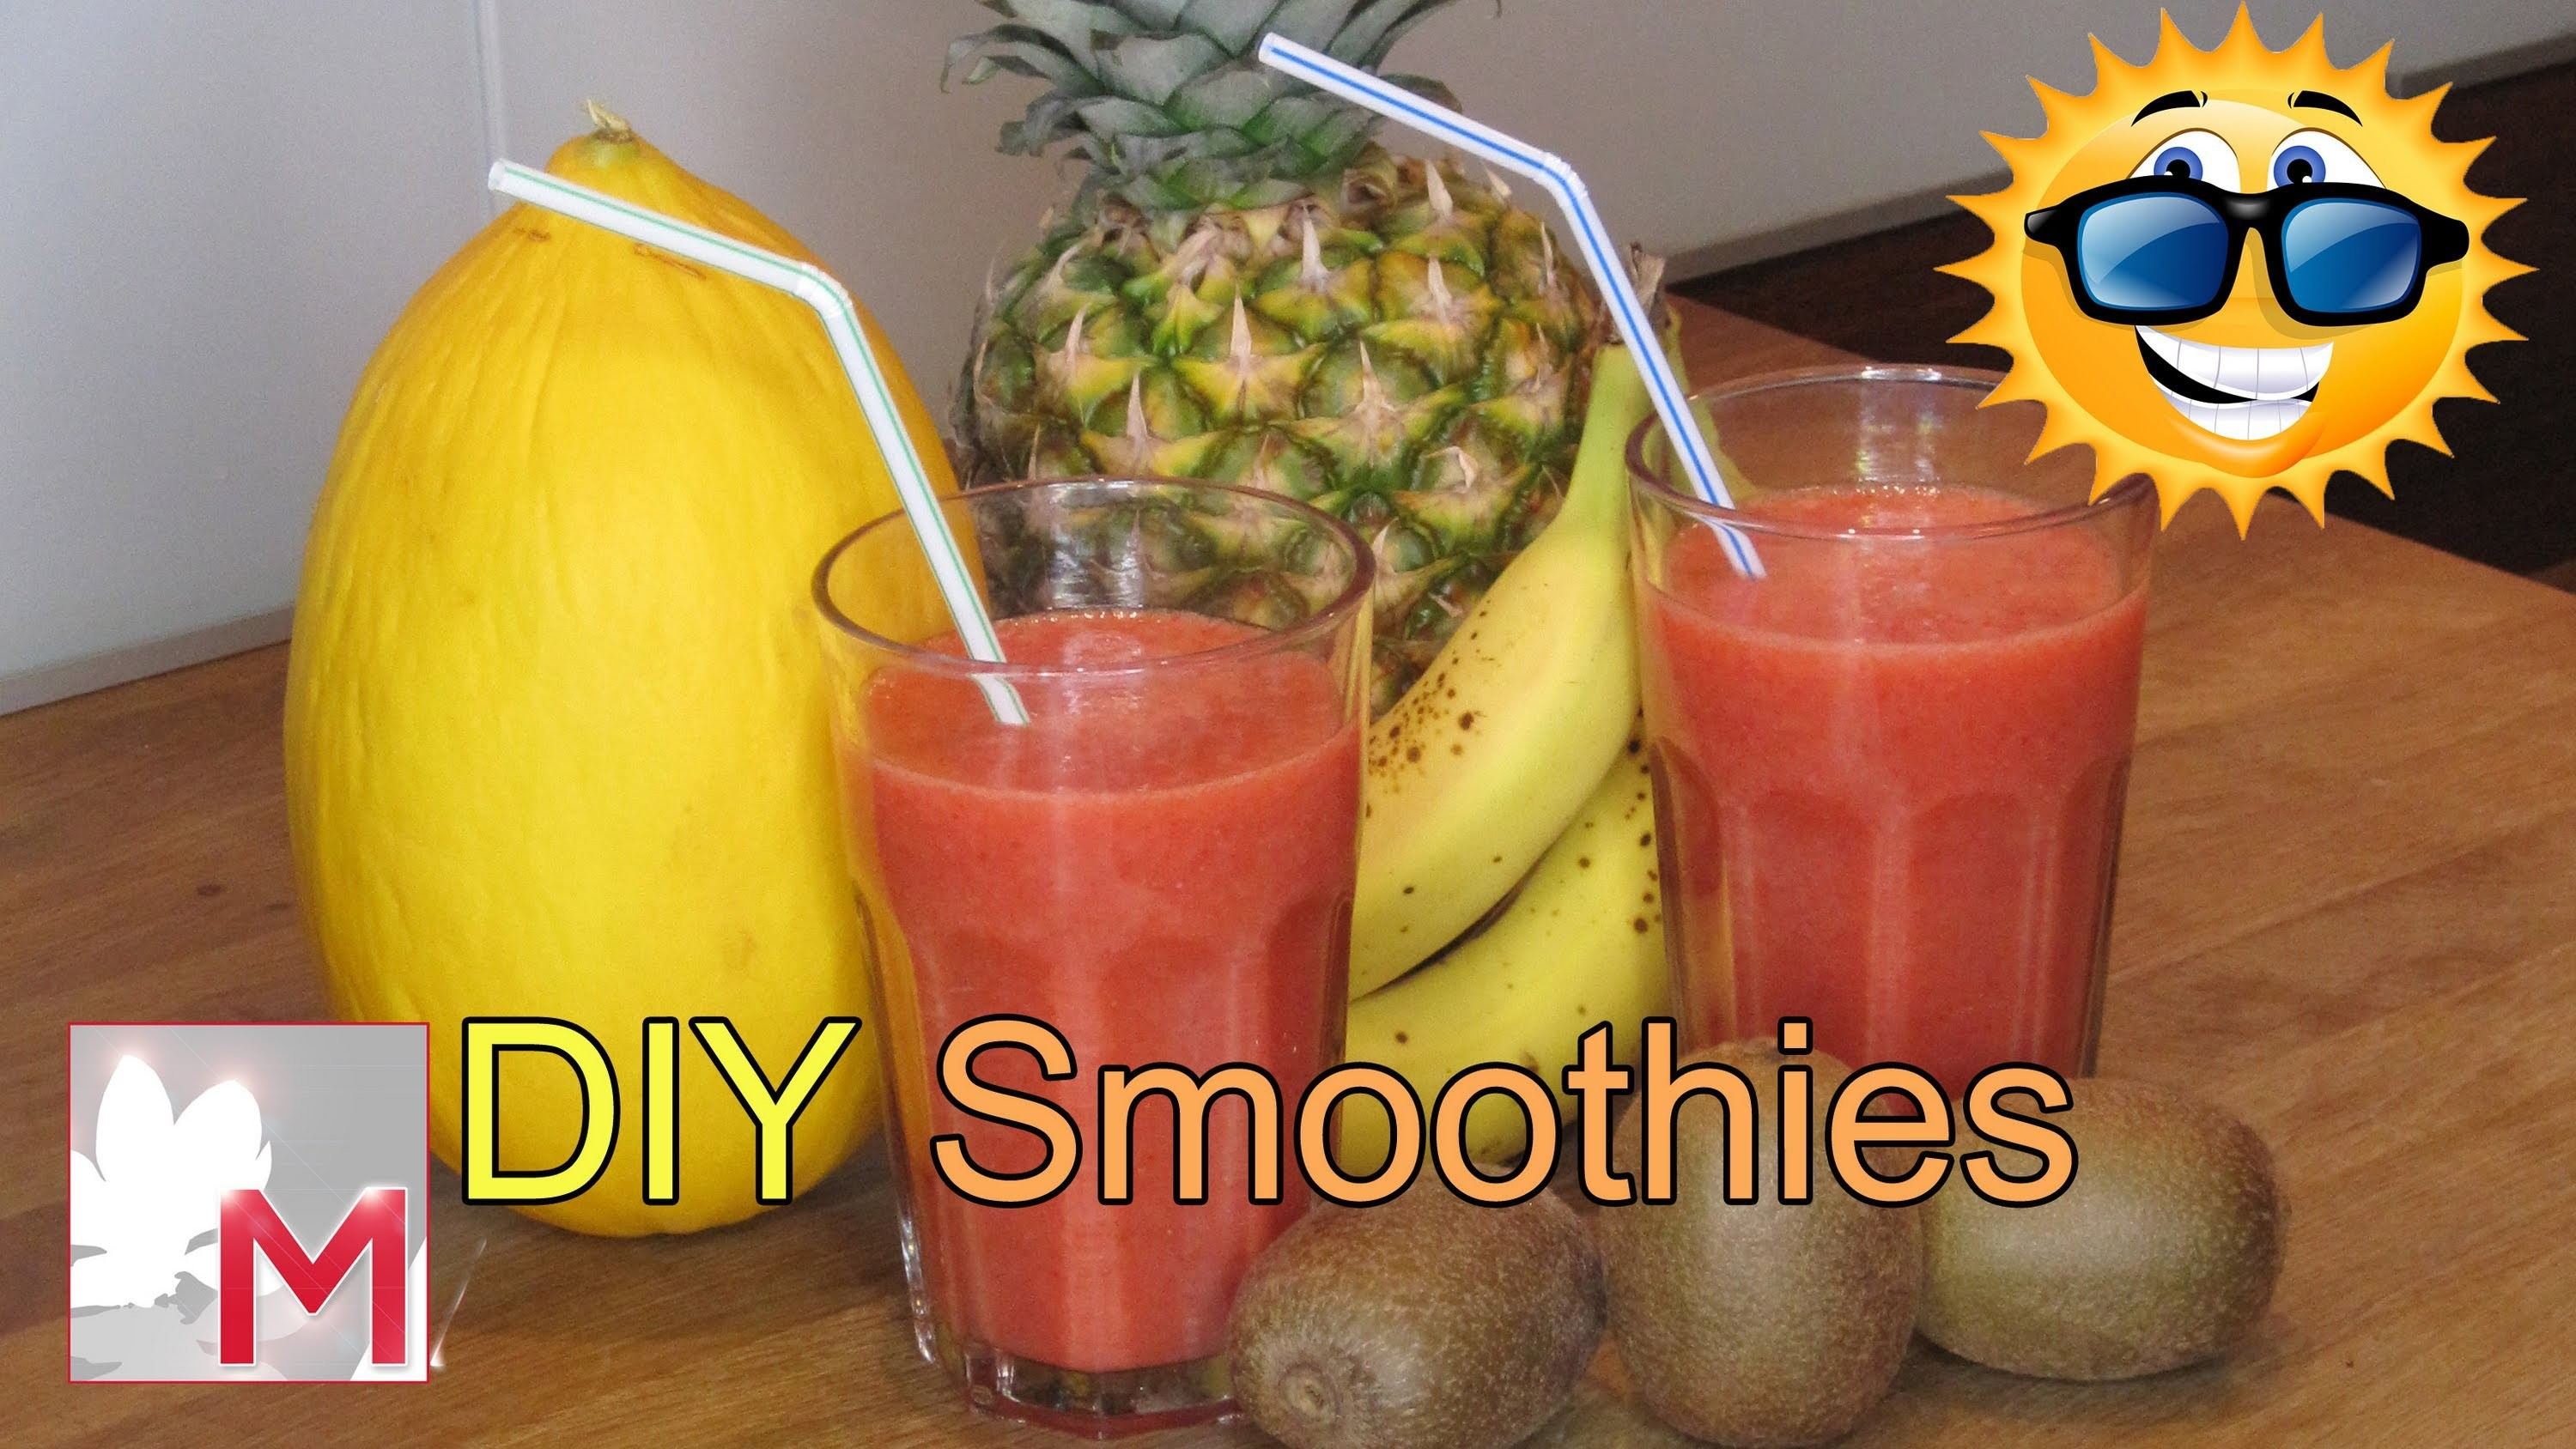 Enjoy Summer DIY Smoothie